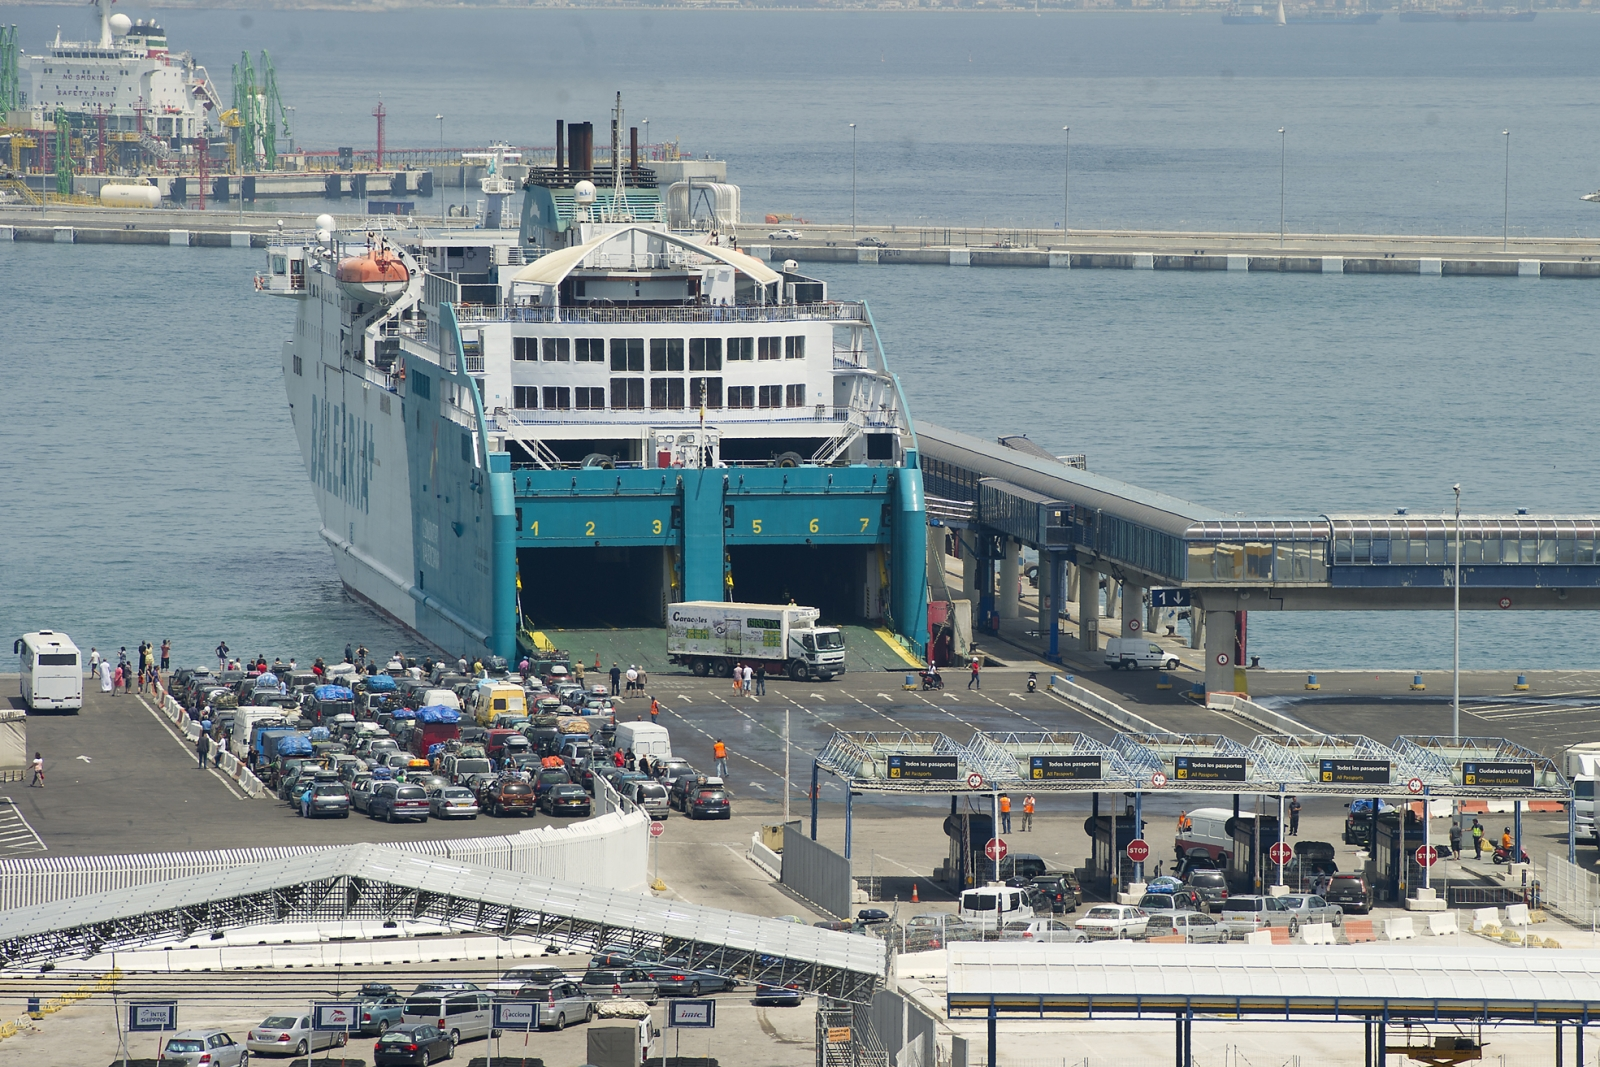 A Ferry from Ceuta docks in Spain